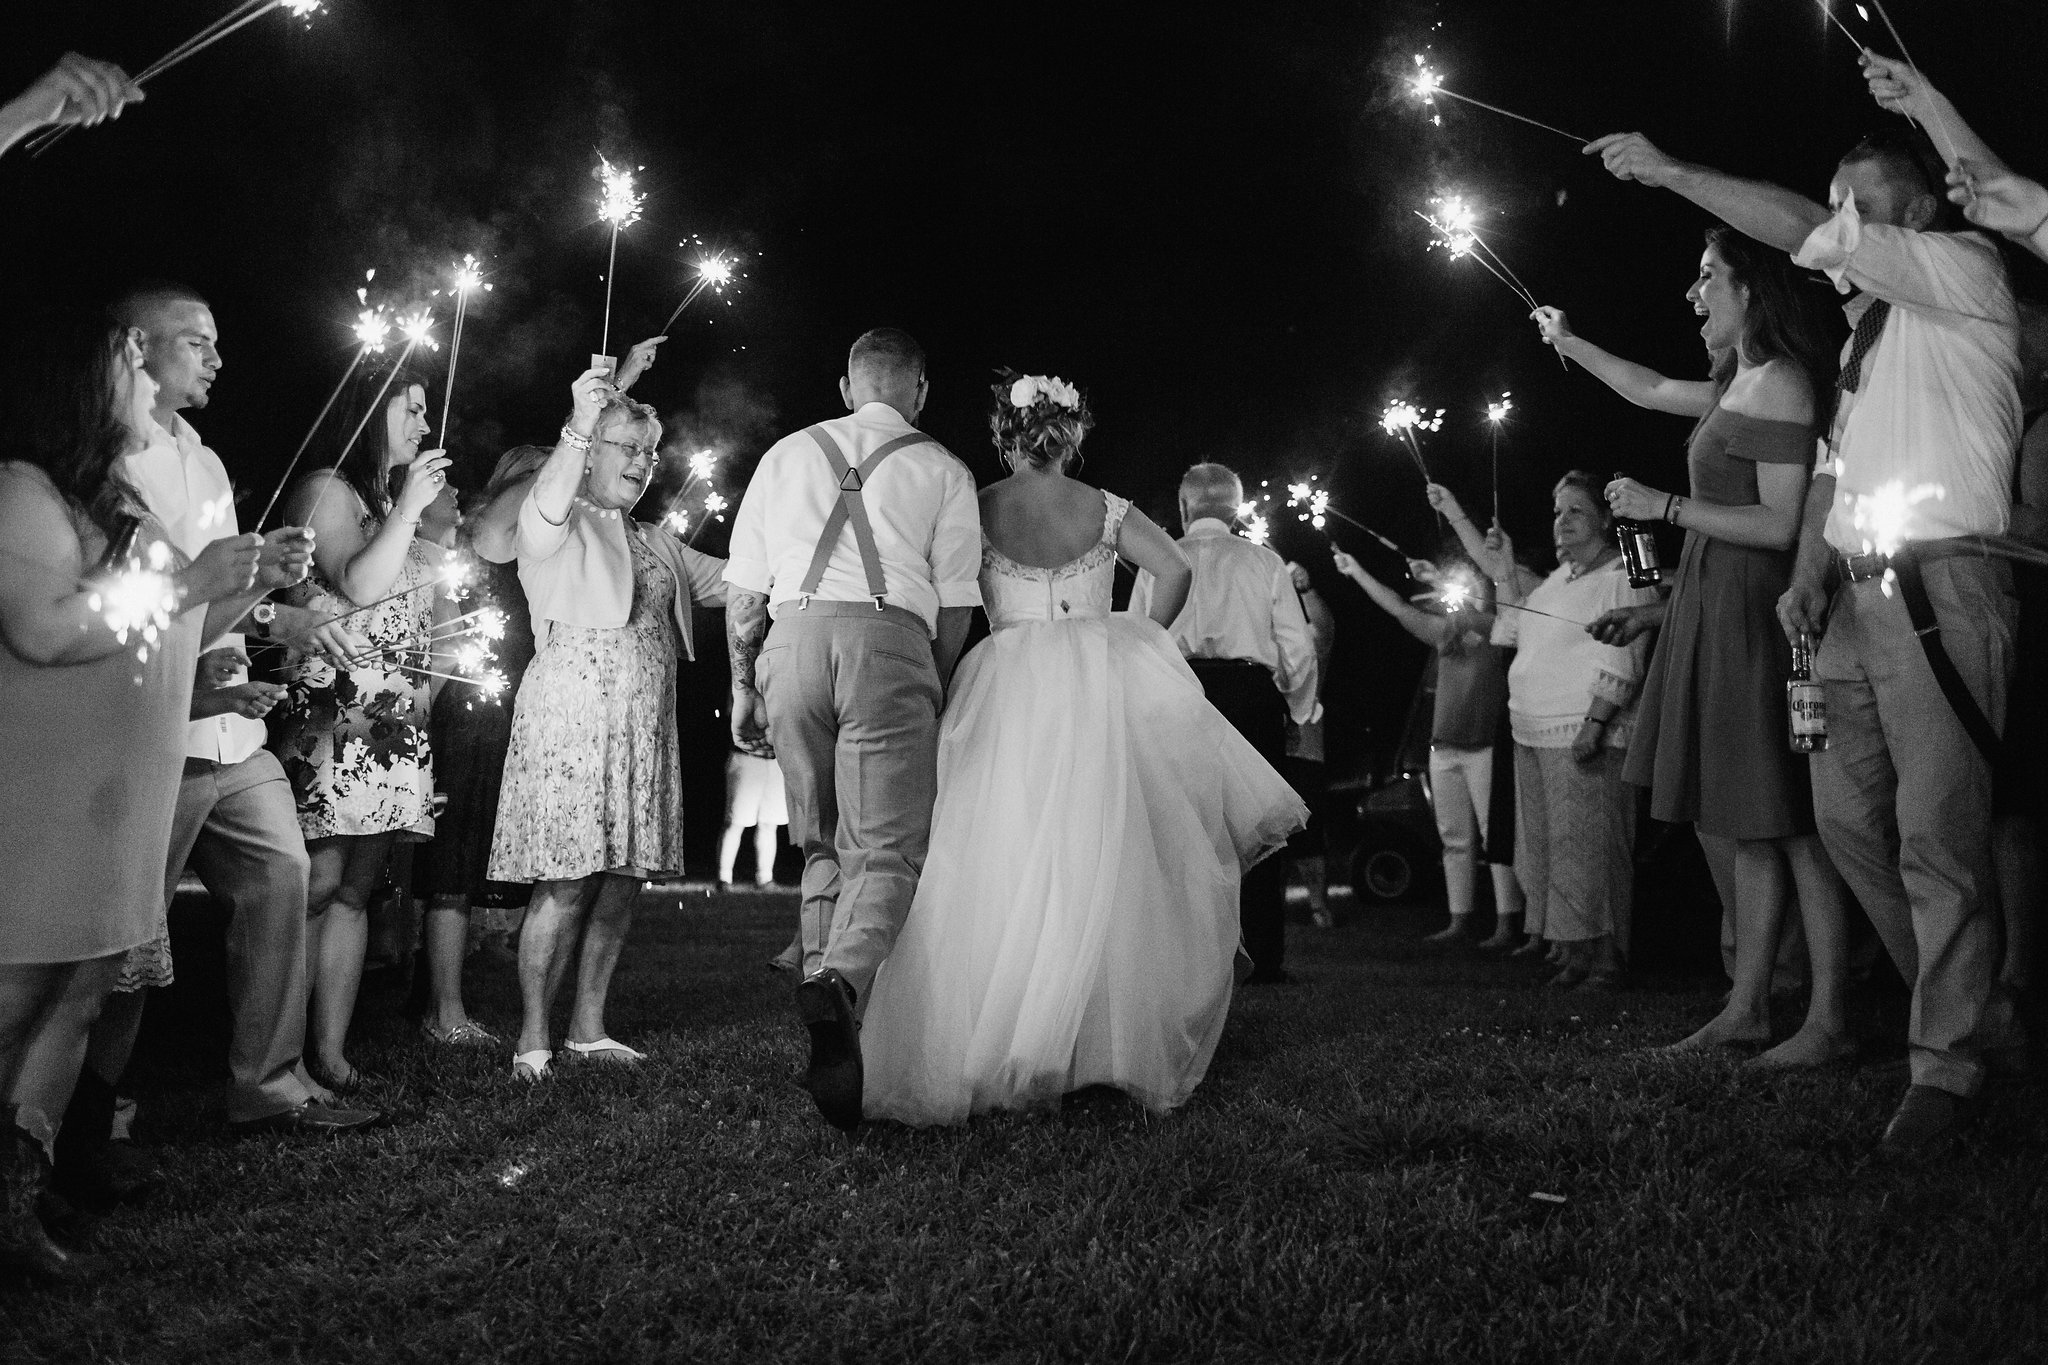 Bethany&TimmyMarried2017-07-07at19.28.35PM28.jpg